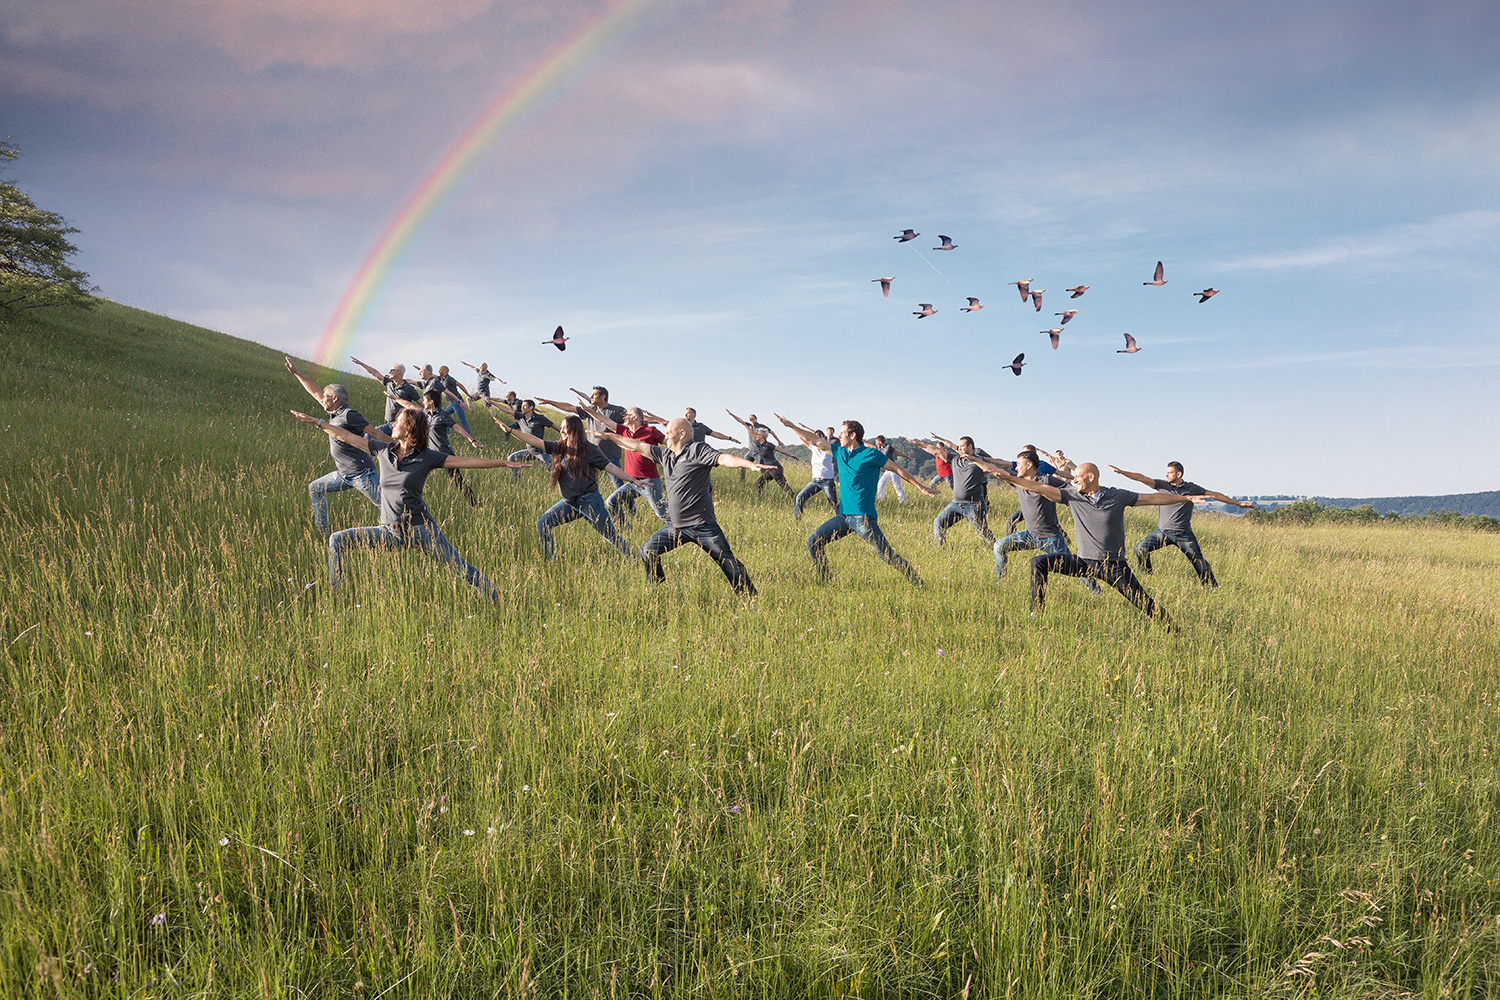 MBA Team in meditativer Pose in der Natur mit Regenbogen